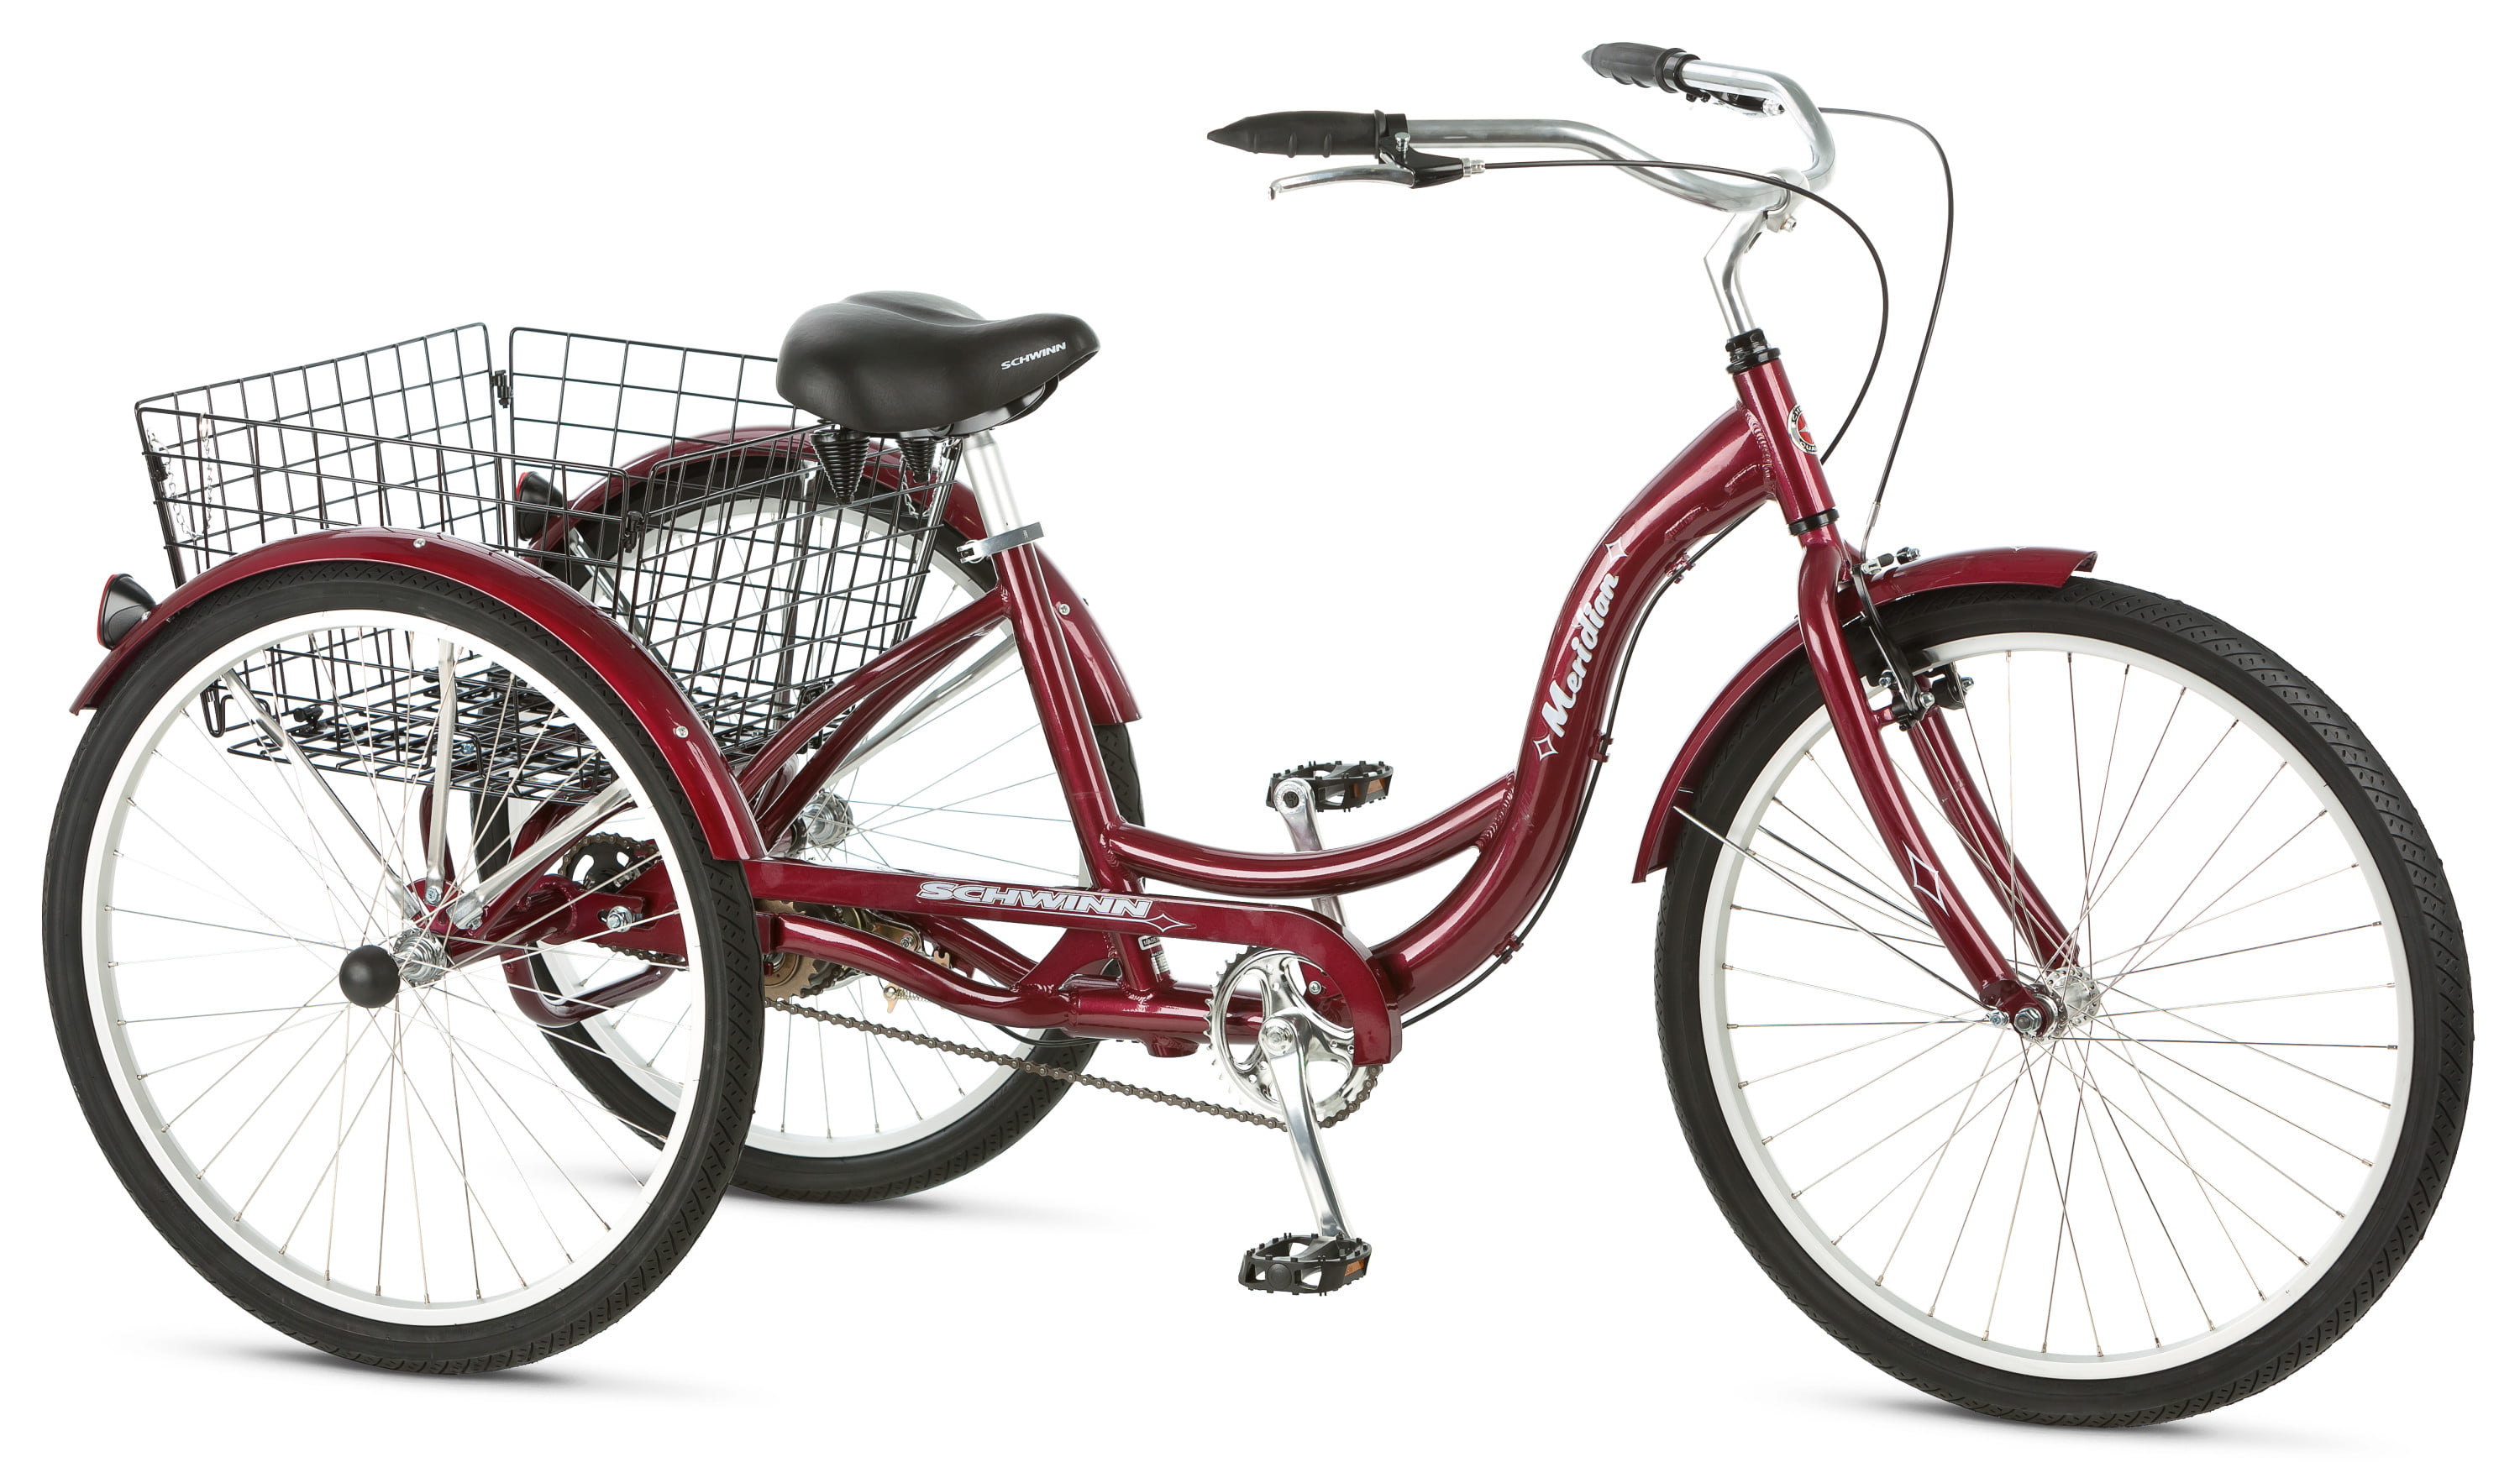 Schwinn Meridian Adult Tricycle, 26-inch wheels, rear storage basket,  Cherry - Walmart.com - Walmart.com